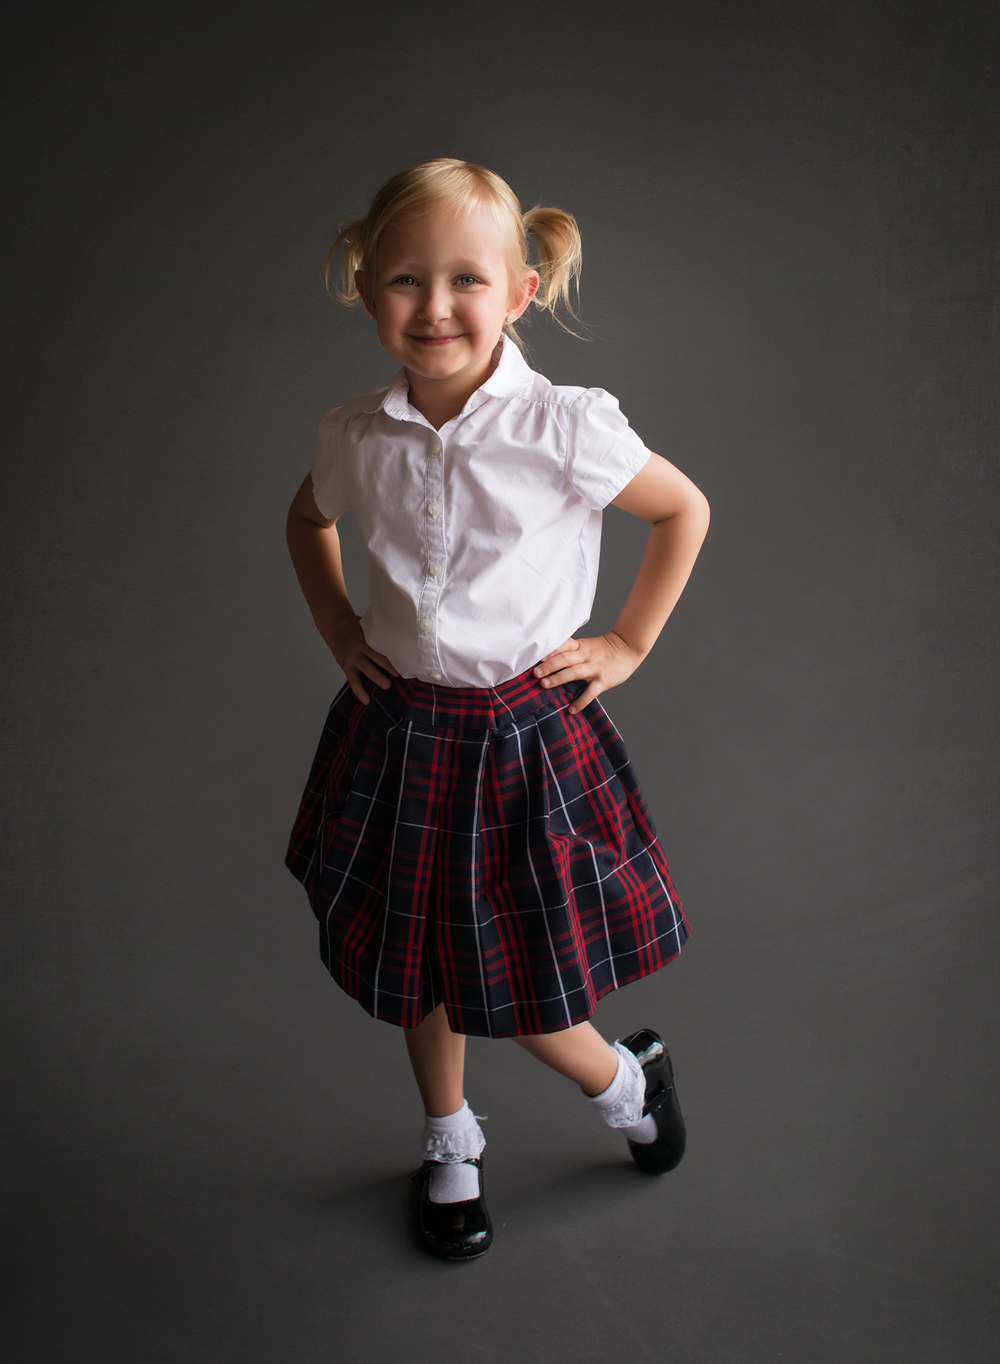 09 back to school girl child pre-k school uniform garage studio savage seamless thunder gray edmond ok photographer oklahoma city (5).png